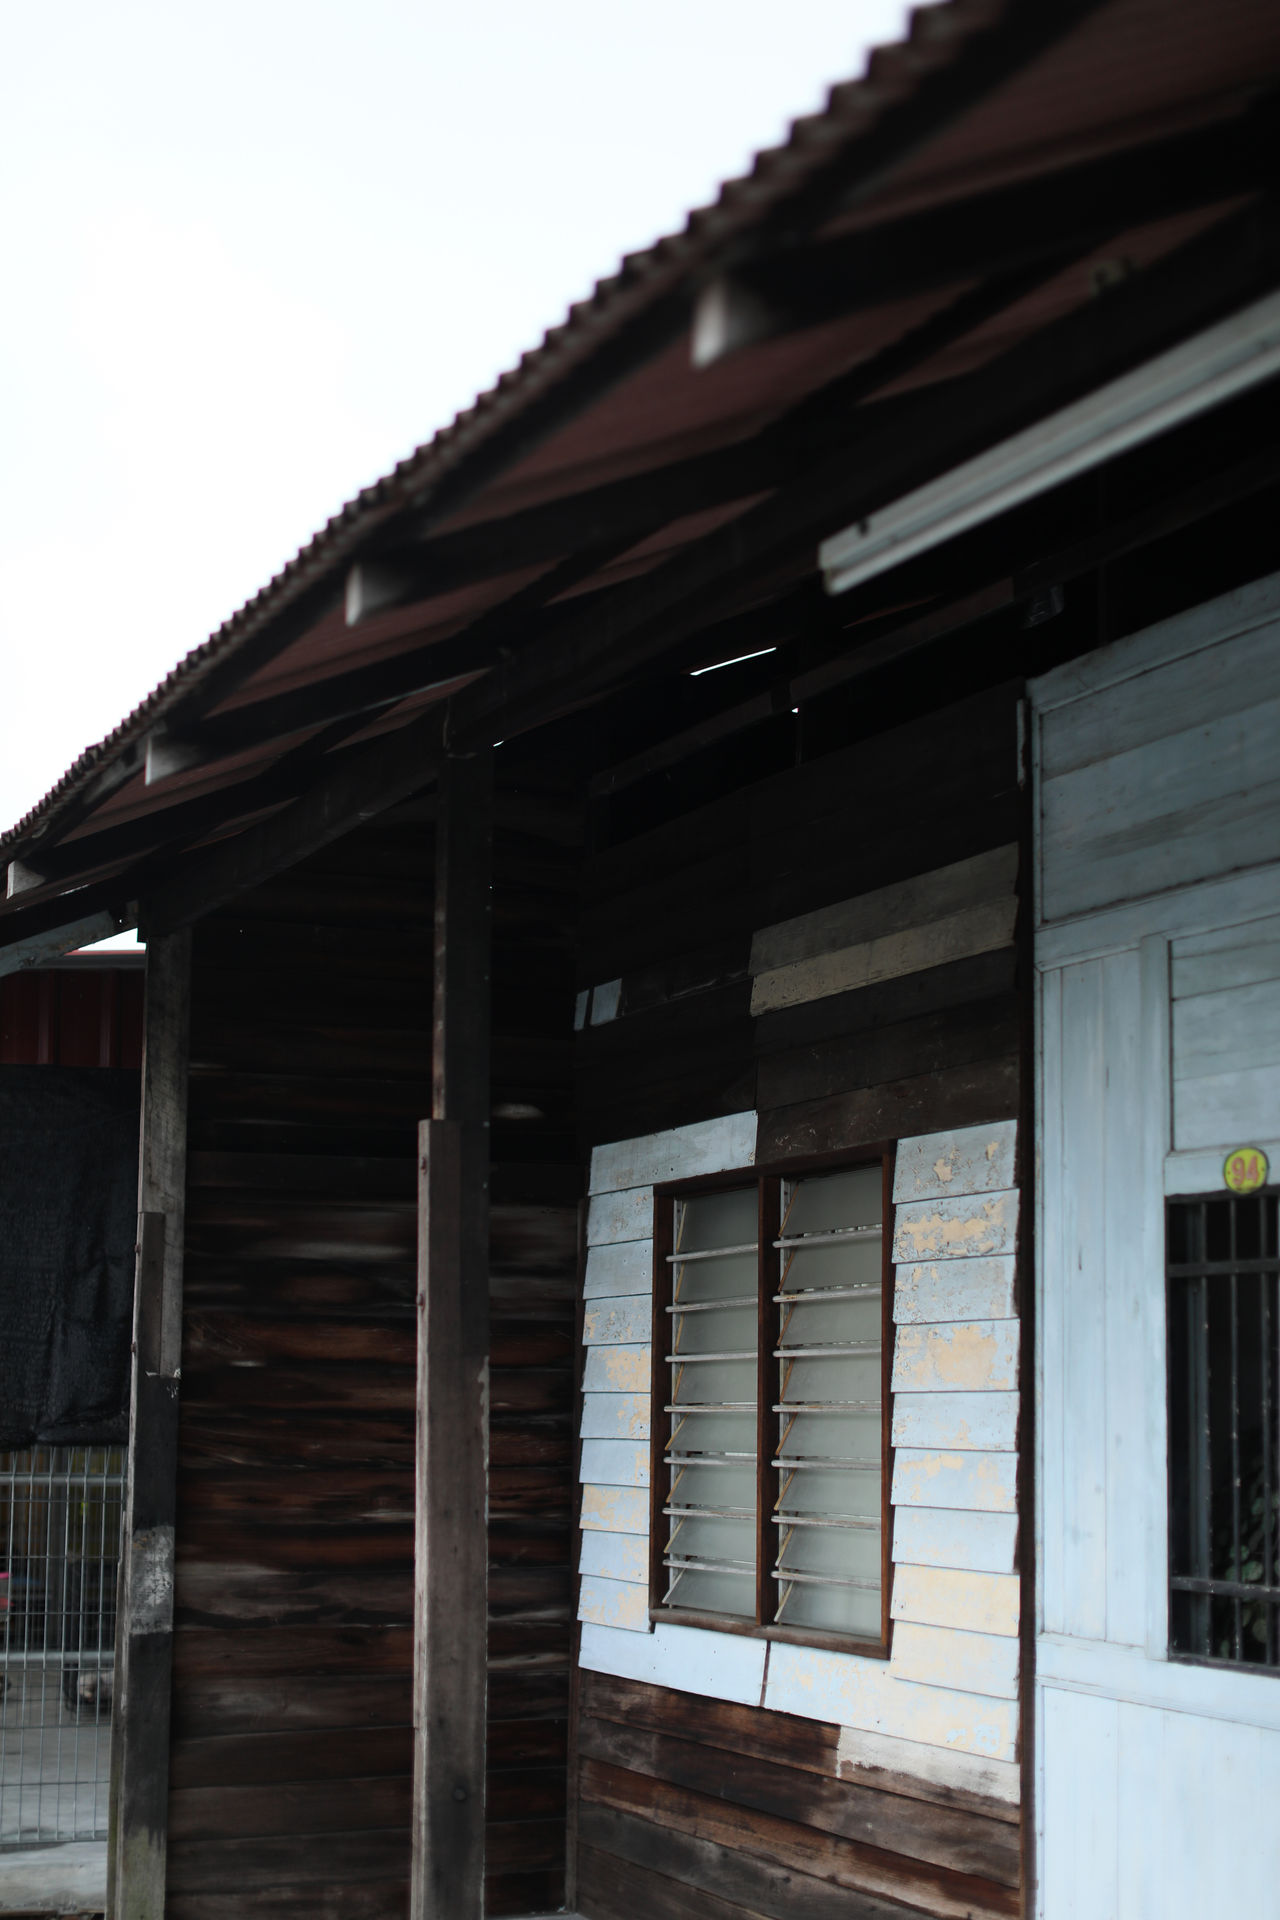 Chew Jetty #chewjetty #heritage #penang #penang Herritage# #photography #Wood Wood - Material